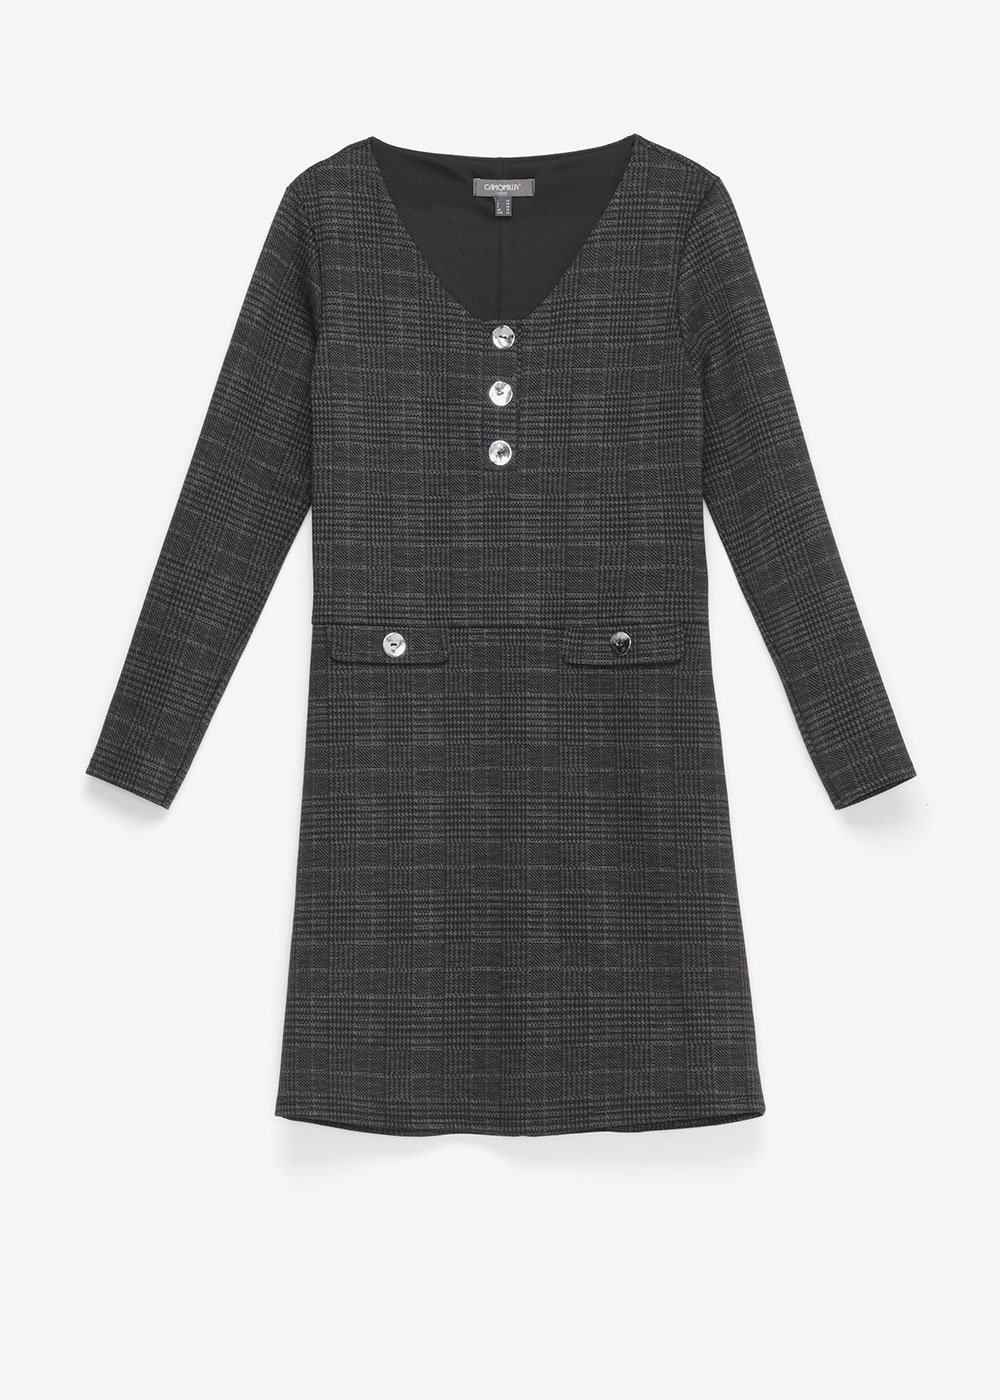 Astrid dress with check pattern - Black  / Grey Multi - Woman